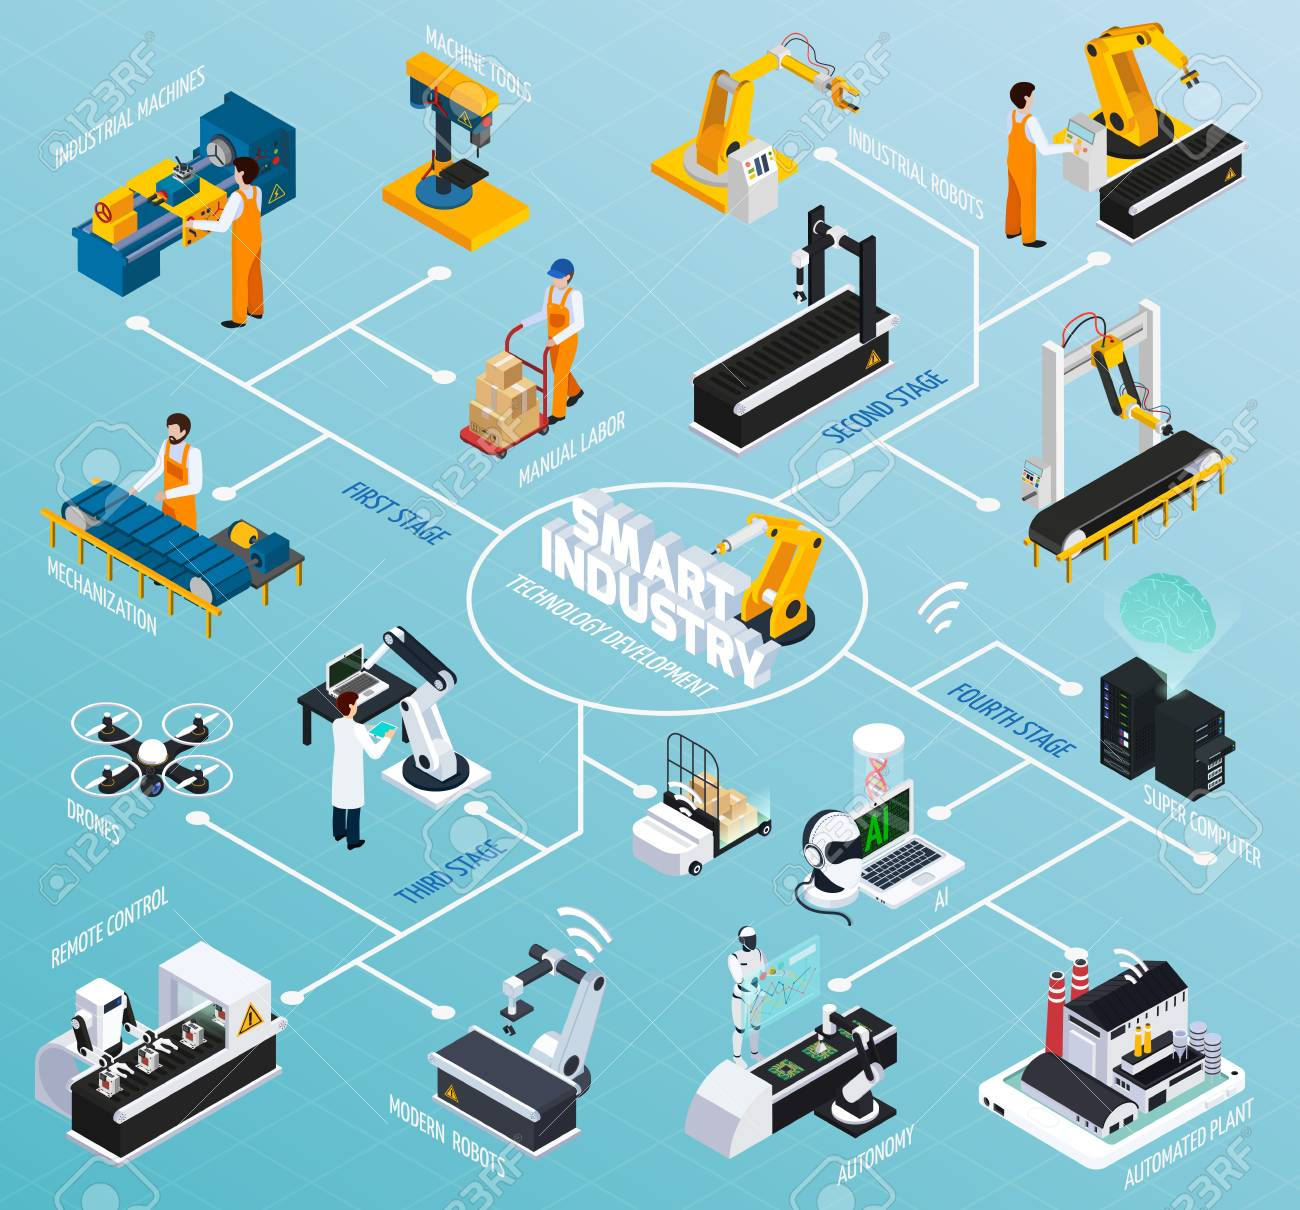 Smart industry isometric flowchart with images of robotic manipulators and various industrial facilities representing technological development vector illustration - 98019450